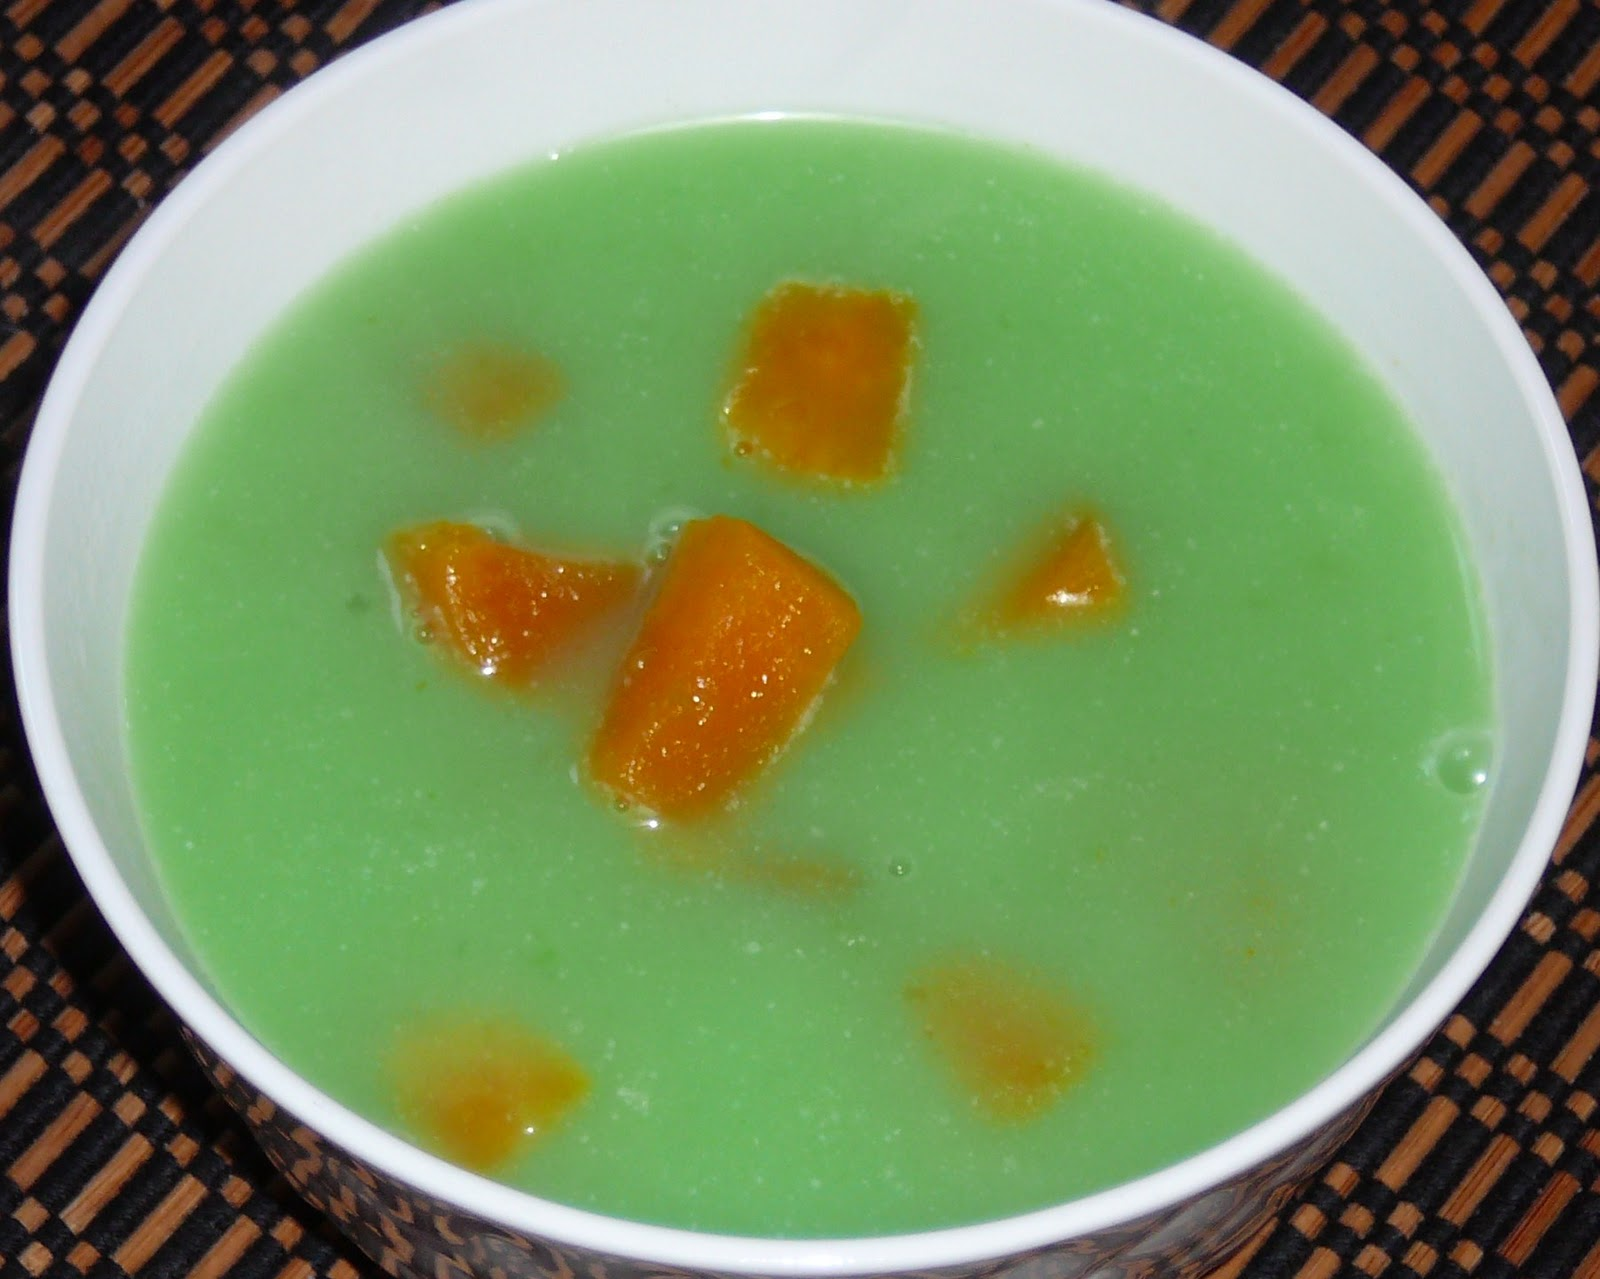 Sweet Potato with Sago Beads in Pandan Coconut Soup | Marishia's ...